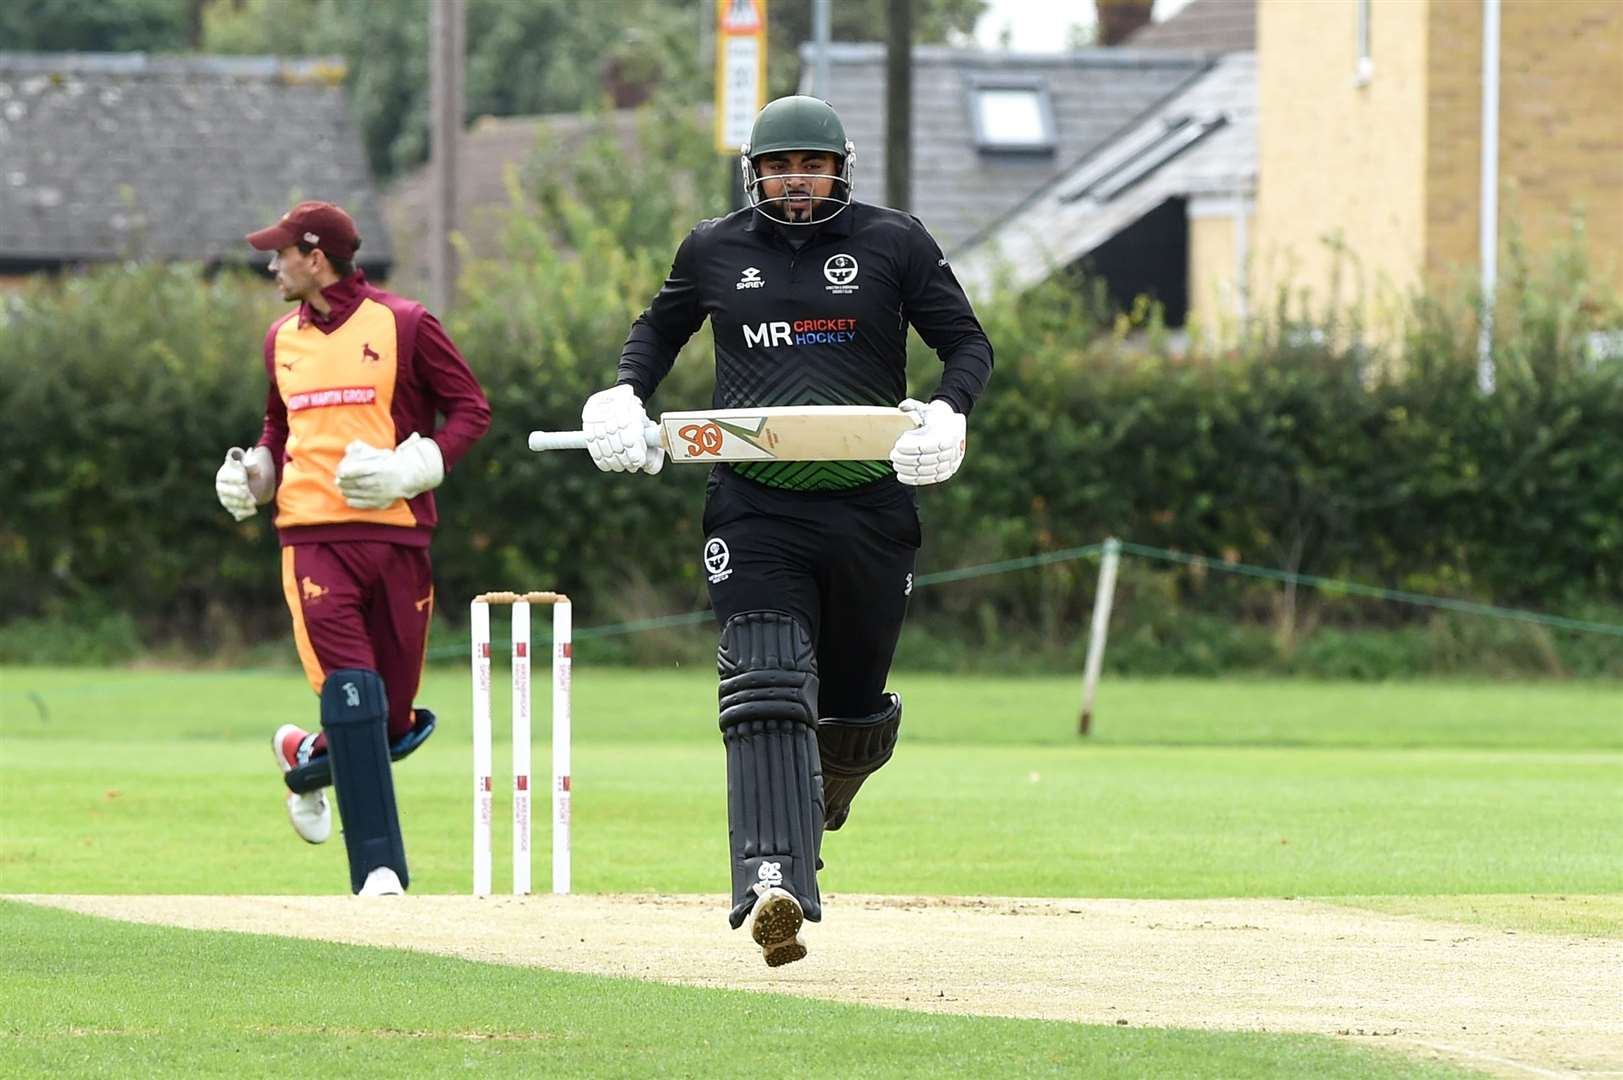 Waqas Hussain clocks up the runs for leaders Sawston & Babraham against Sudbury in their top-of-the-table clash on SaturdayPicture: Mecha Morton